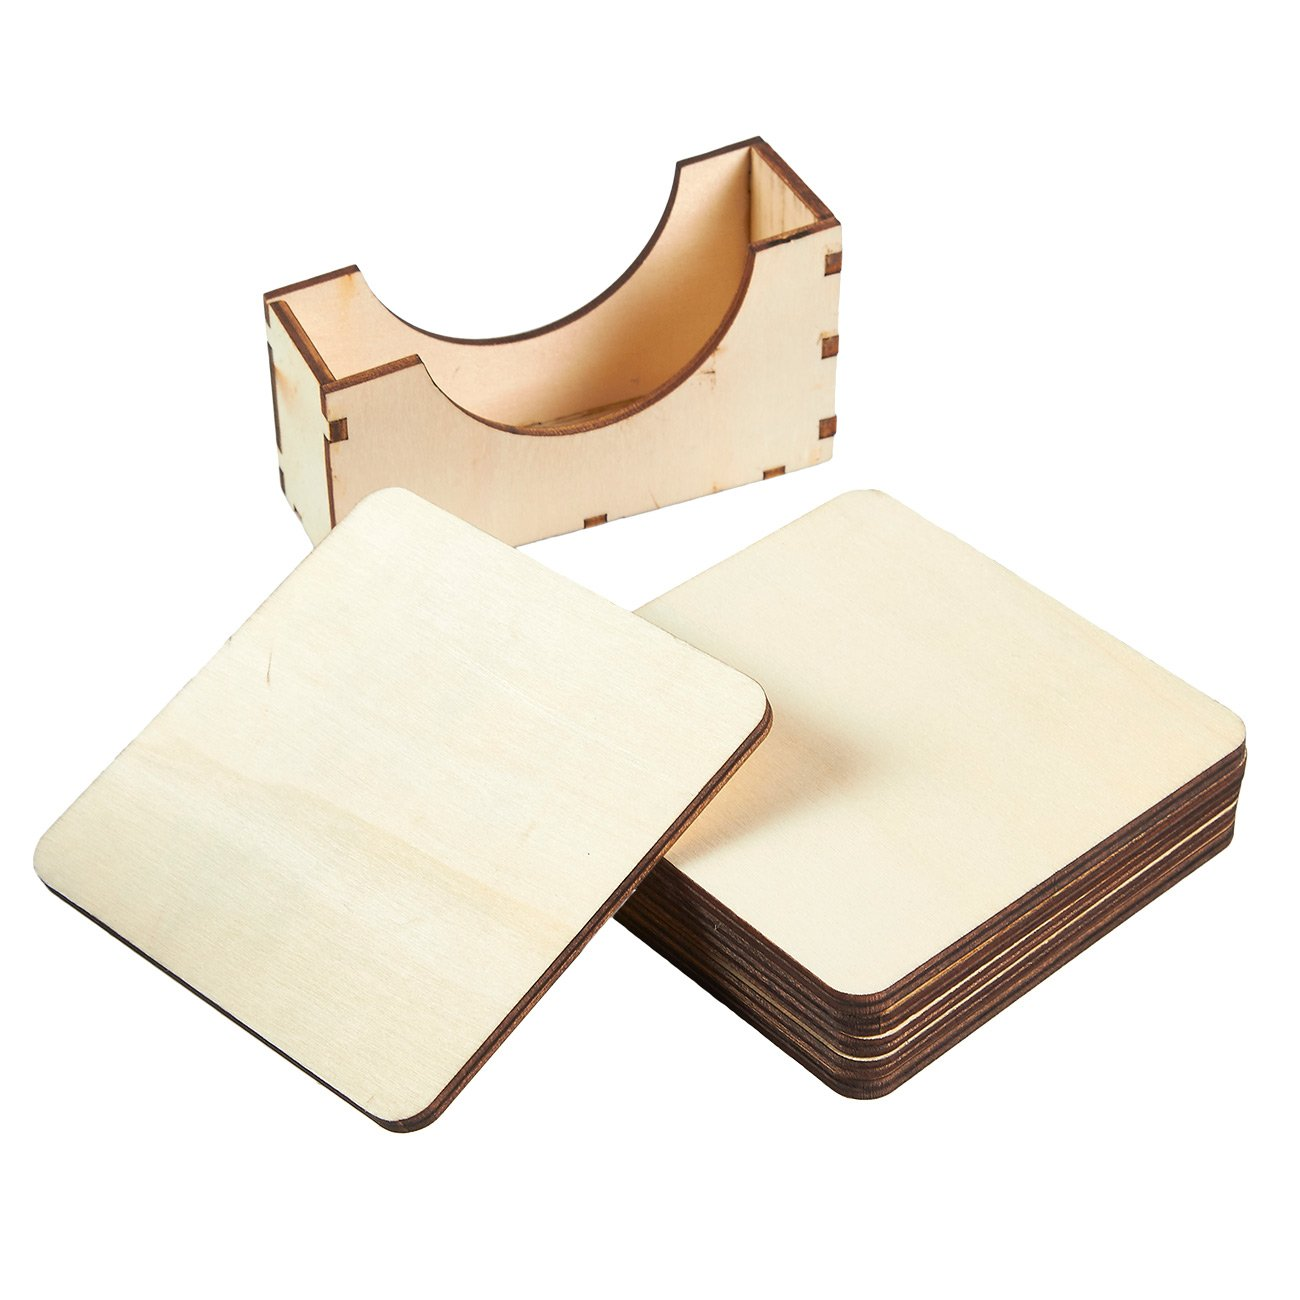 Wood Coasters - 6-Pack Square Wooden Drink Coasters with Holder, Unfinished Wood Cup Coasters for Home Kitchen, Office Desk, 3.875 x 3.875 x 0.188 Inches